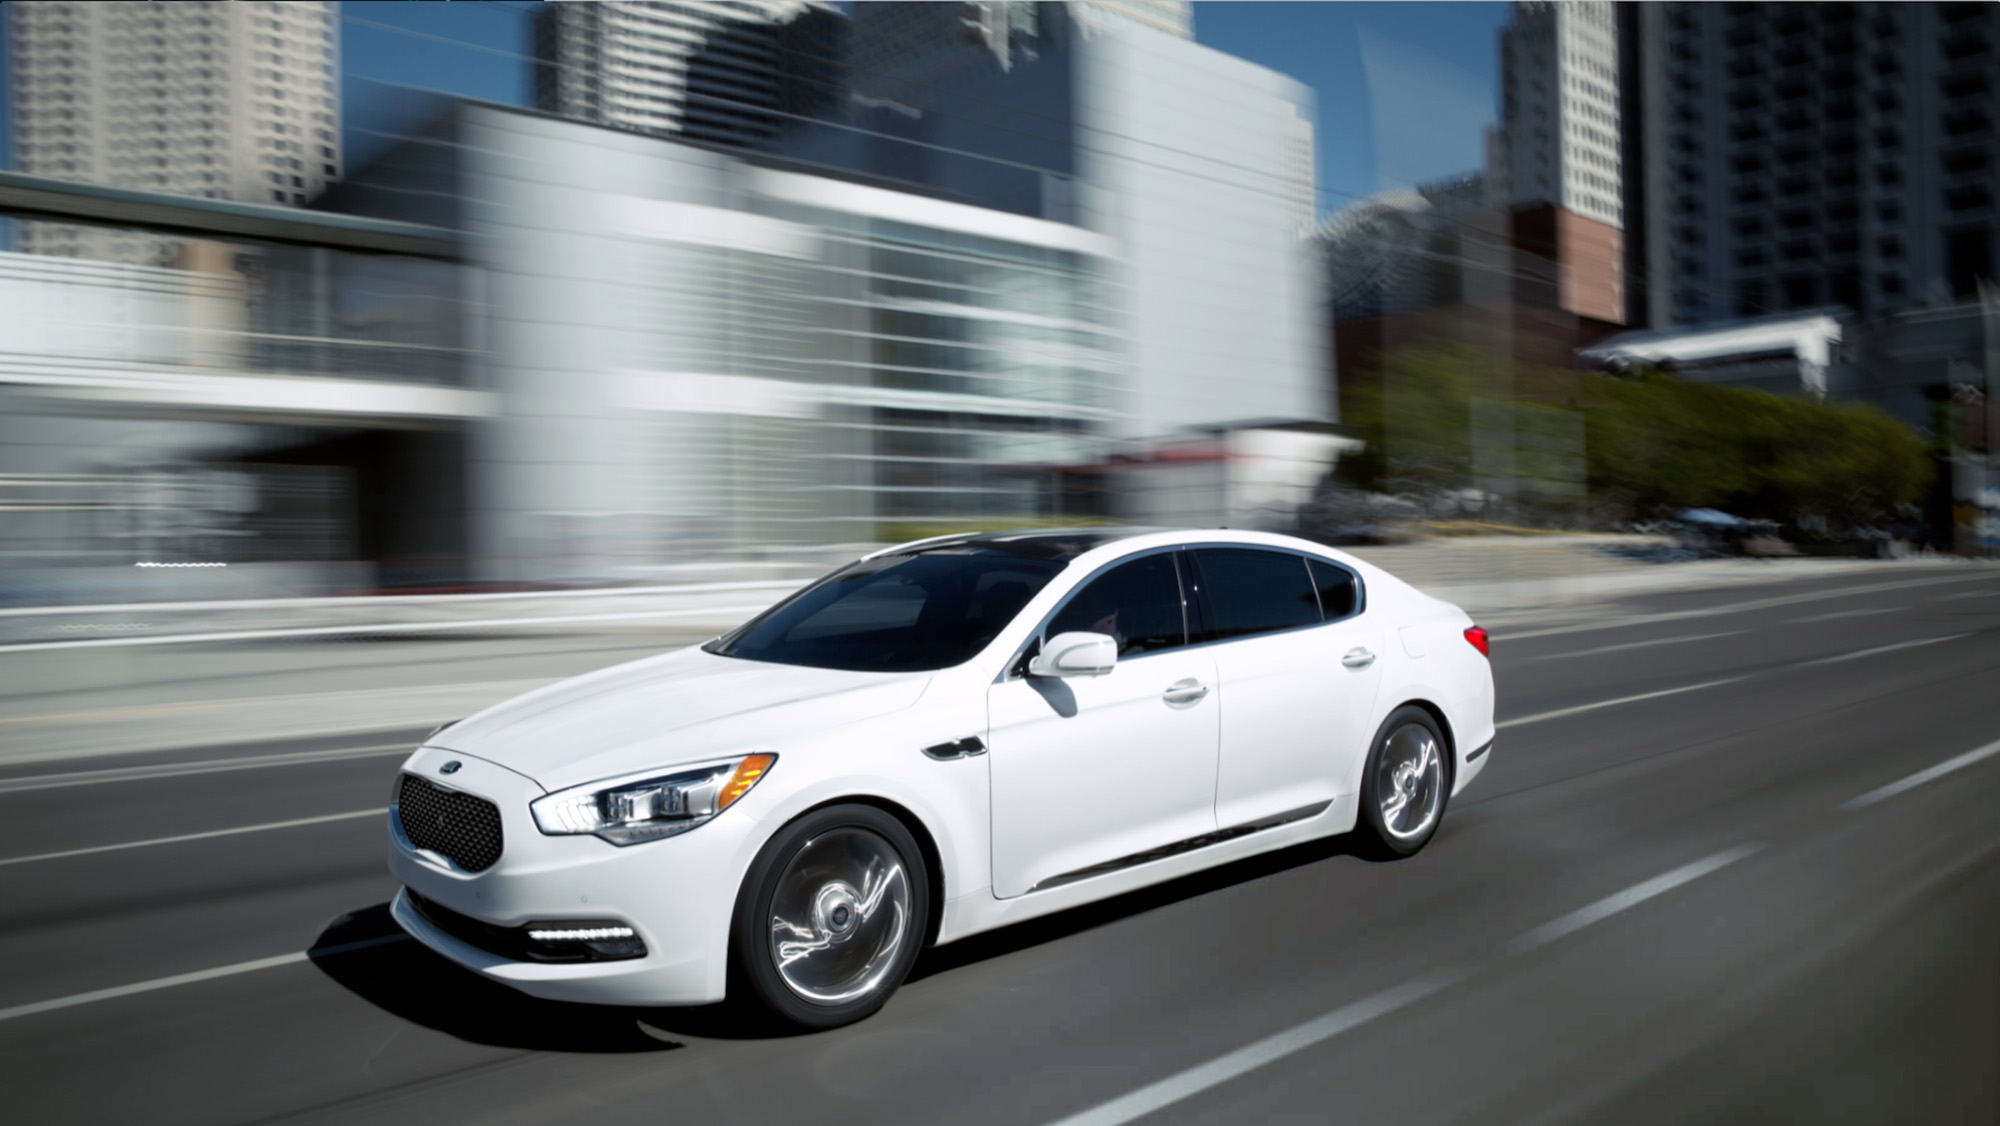 by pacific named vehicle satisfying most price blog auto kia